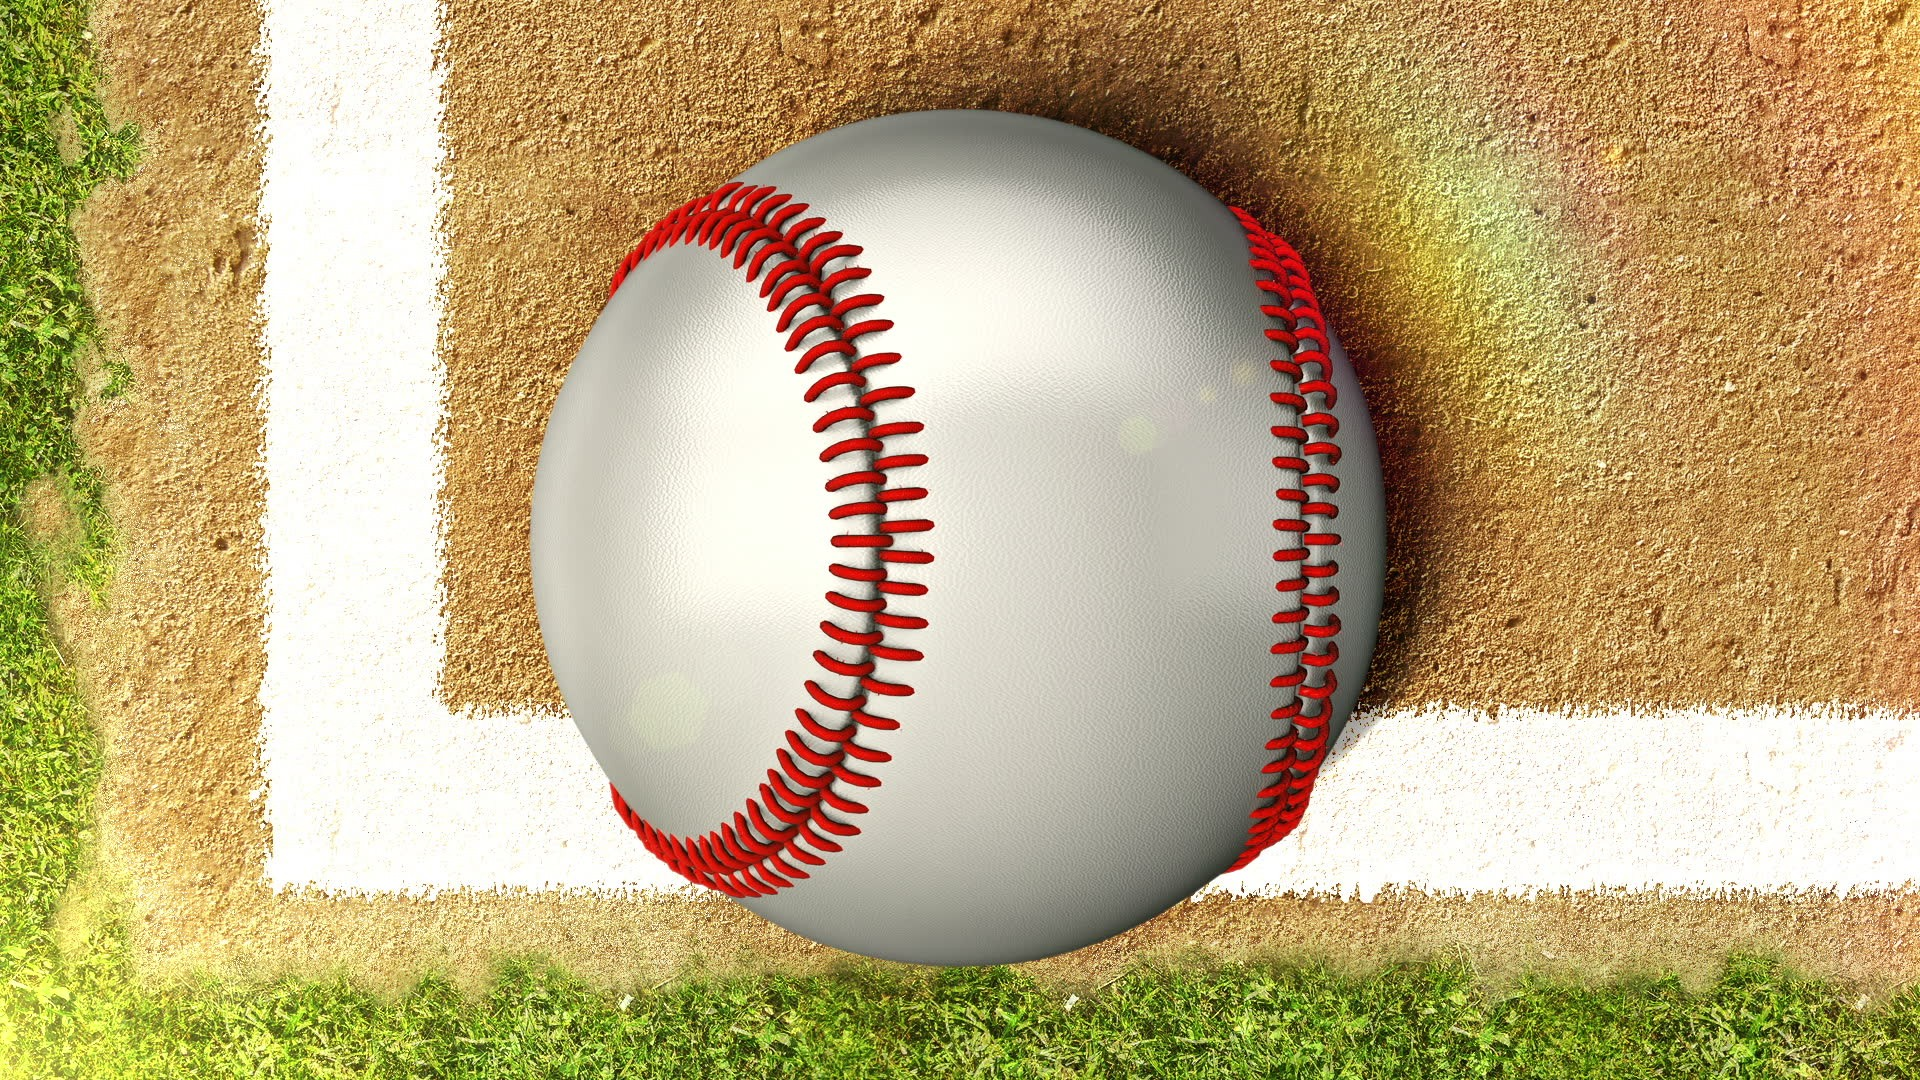 Sports Wallpaper For Android Free Download: Baseball Wallpaper ·① Download Free Beautiful Full HD